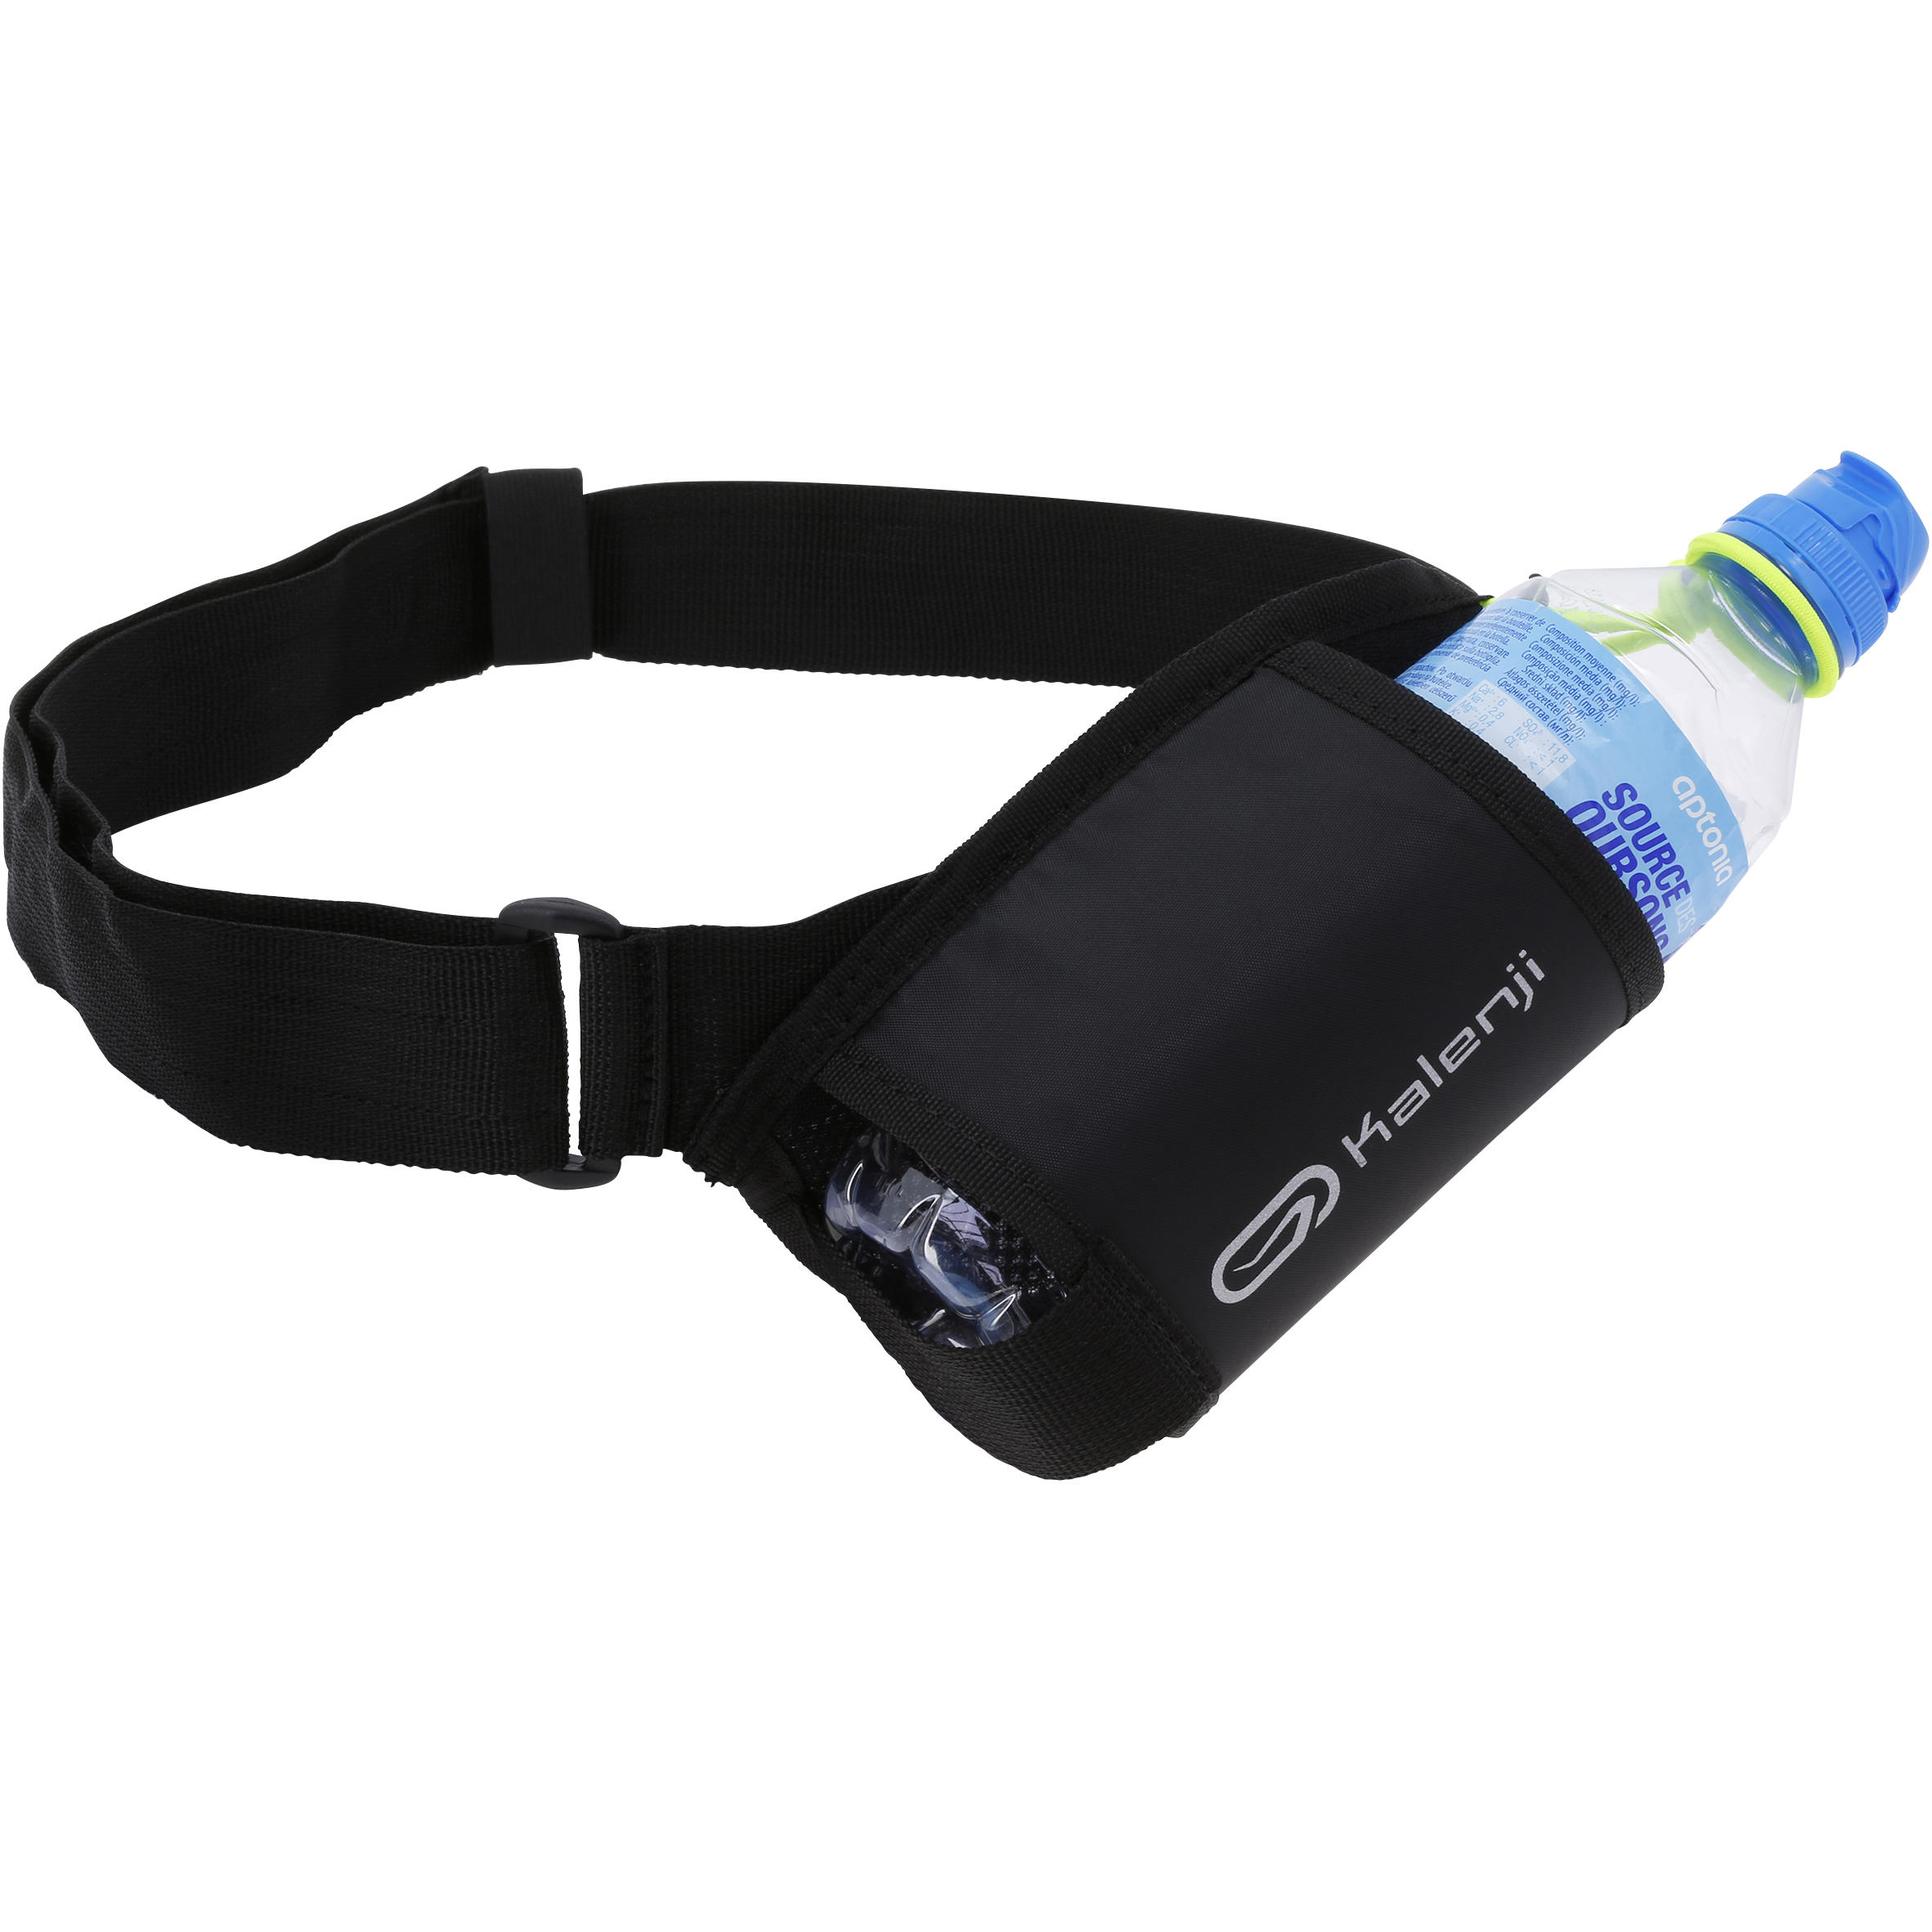 RUNNING BOTTLE CARRIER BELT